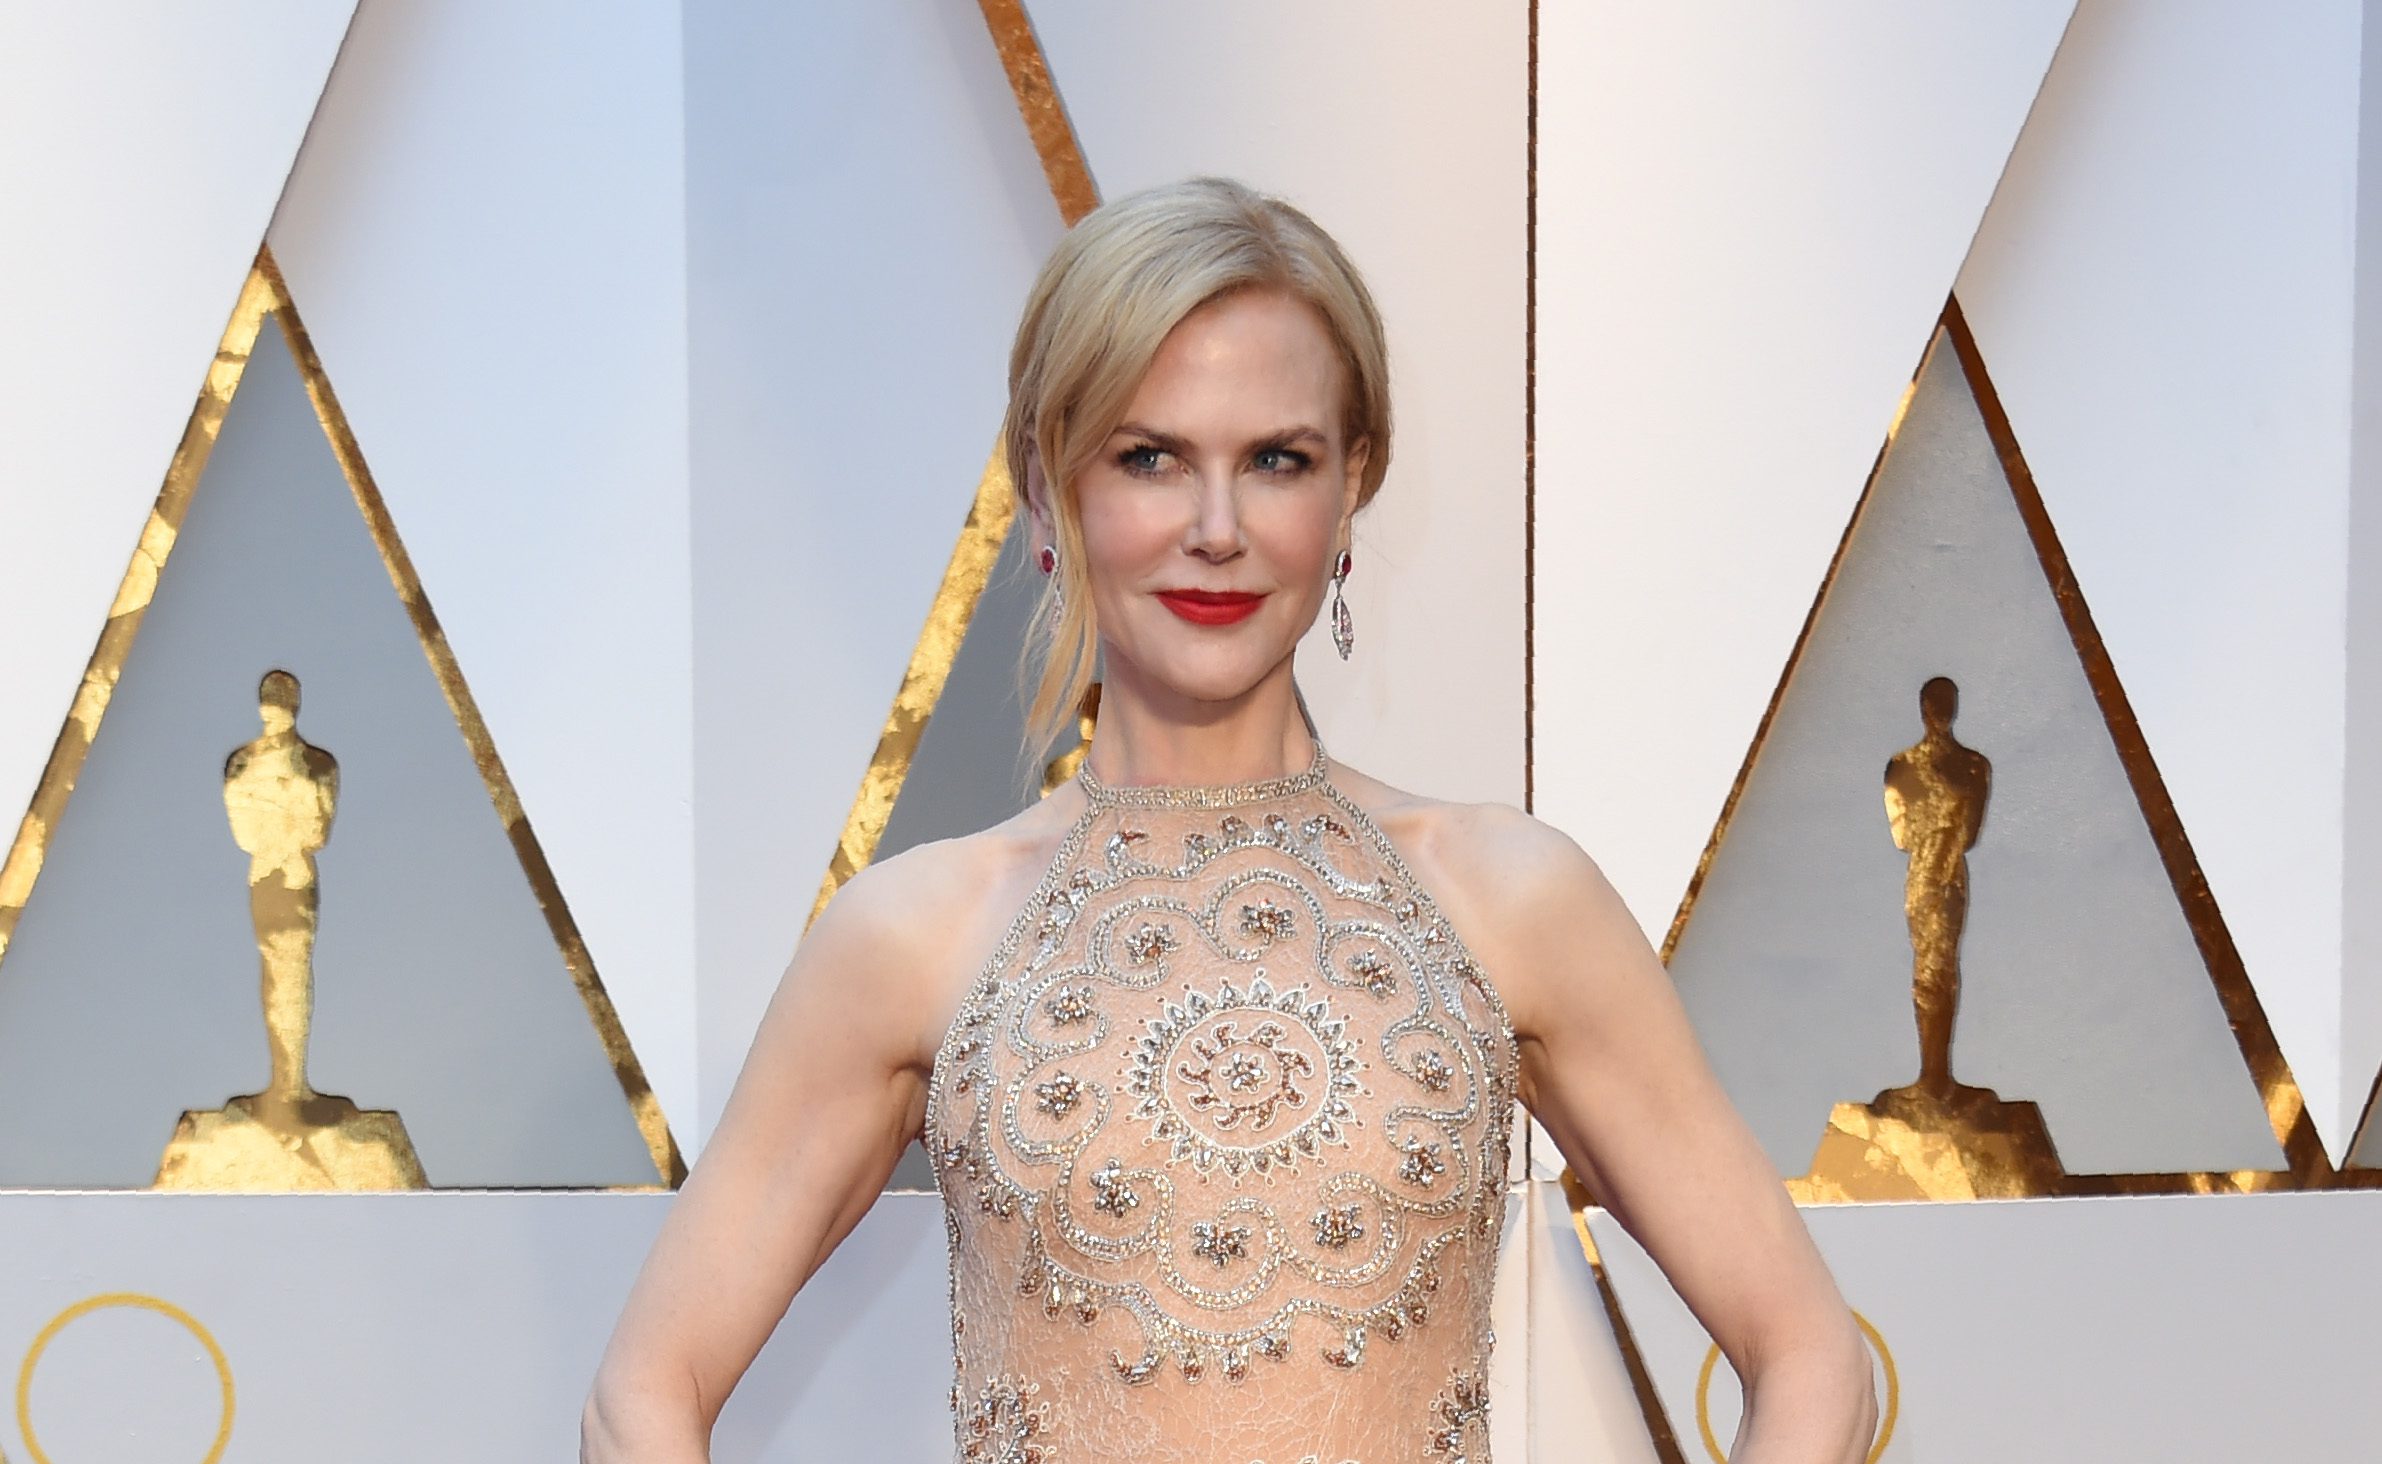 Nominee for Best Supporting Actress  Lion  Nicole Kidman arrives on the red carpet for the 89th Oscars on February 26, 2017 in Hollywood, California.  / AFP / VALERIE MACON        (Photo credit should read VALERIE MACON/AFP/Getty Images)